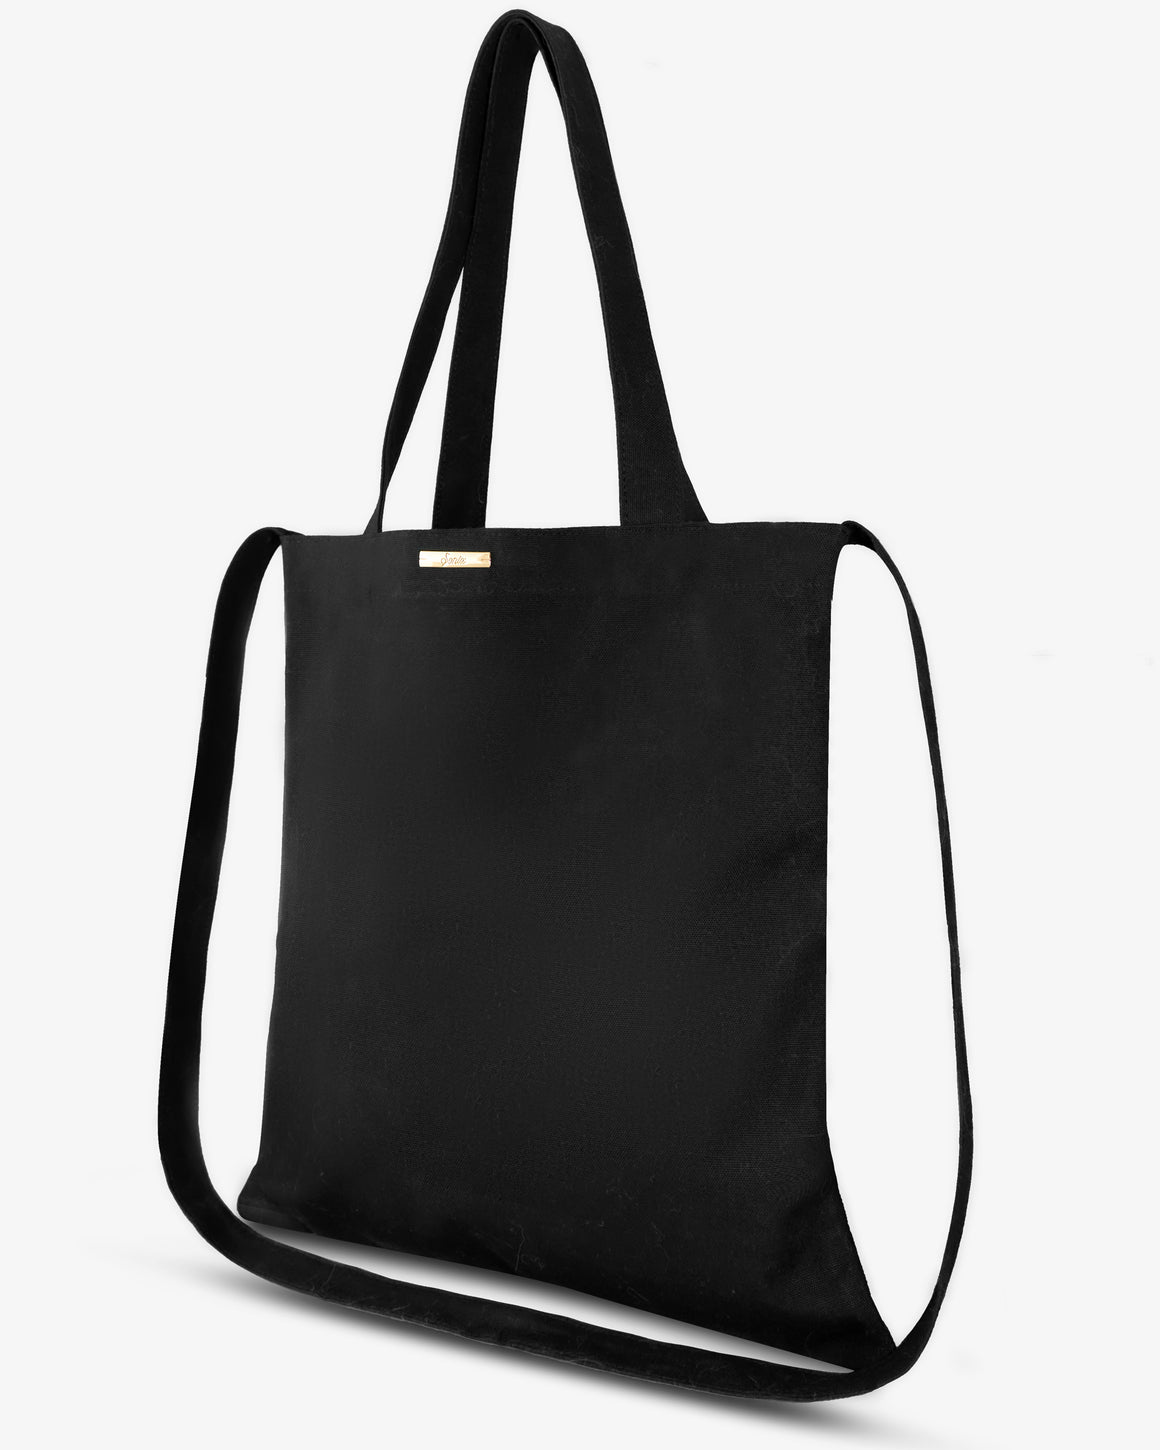 Make It Yours Bag - Black